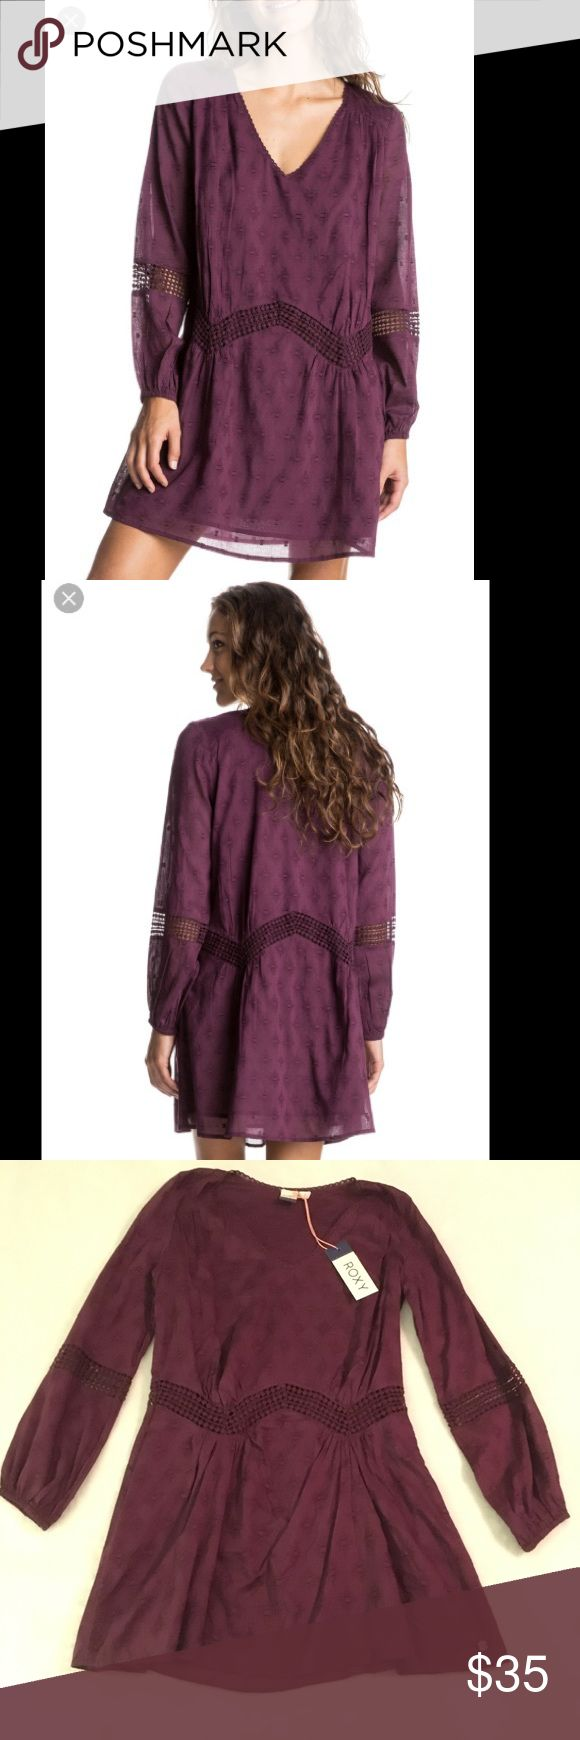 Roxy Plum dress NWT This is a brand new, with tags plum colored long sleeved dress by Roxy.  The body is fully lined, so it's not see through.  no swaps! Roxy Dresses Long Sleeve